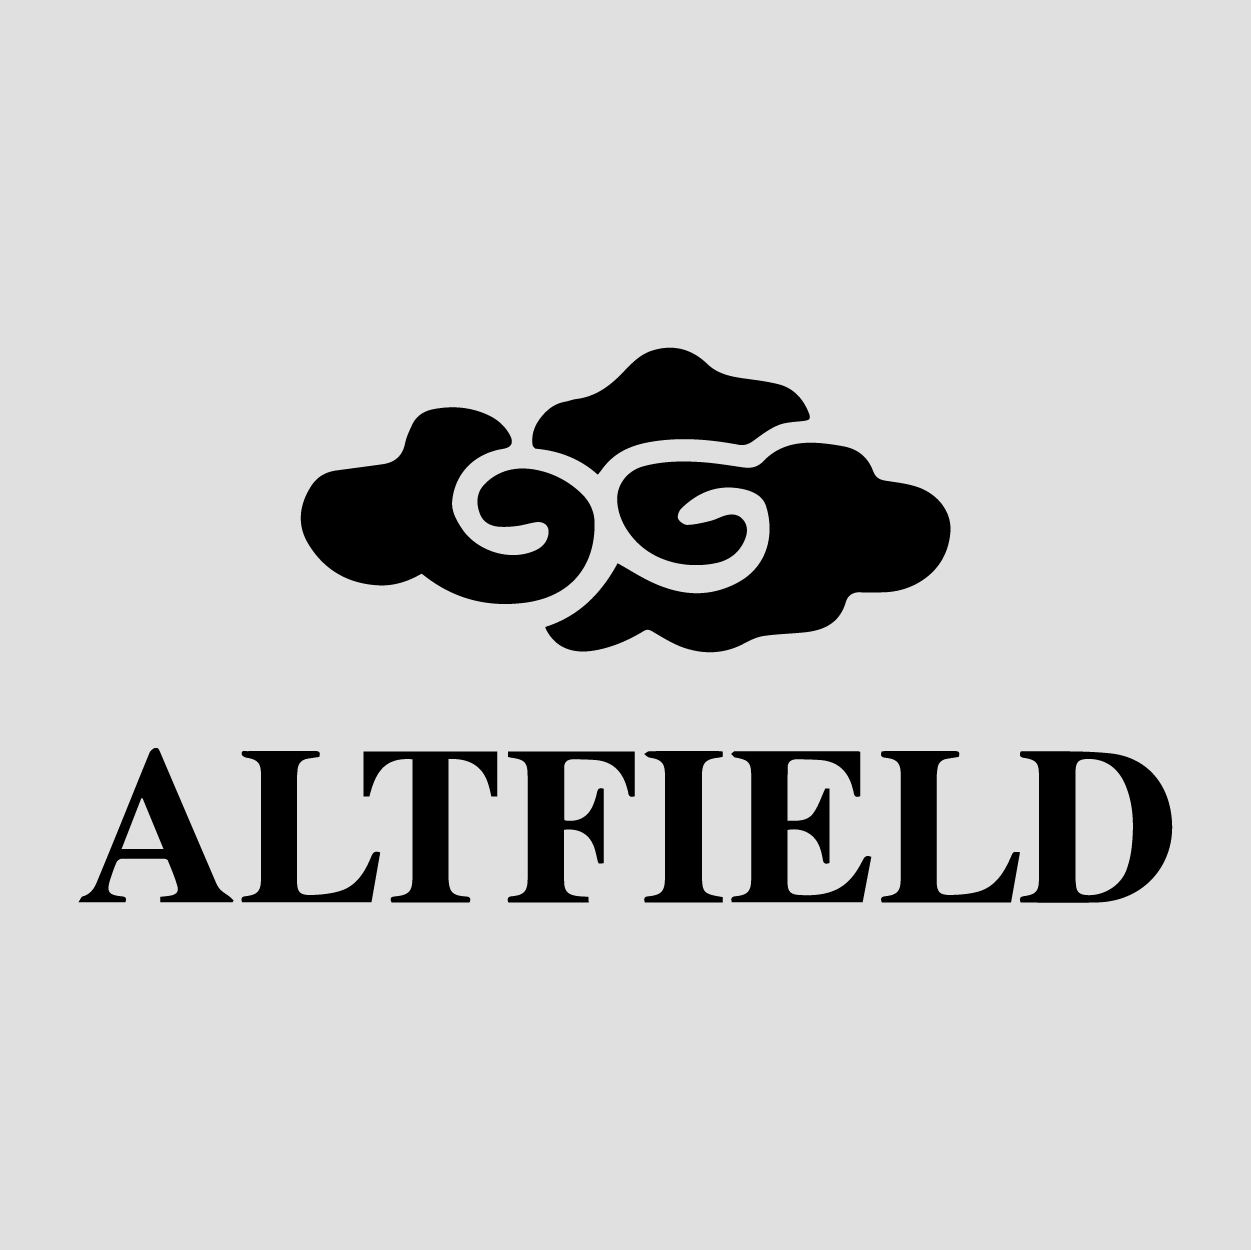 Altfield logo